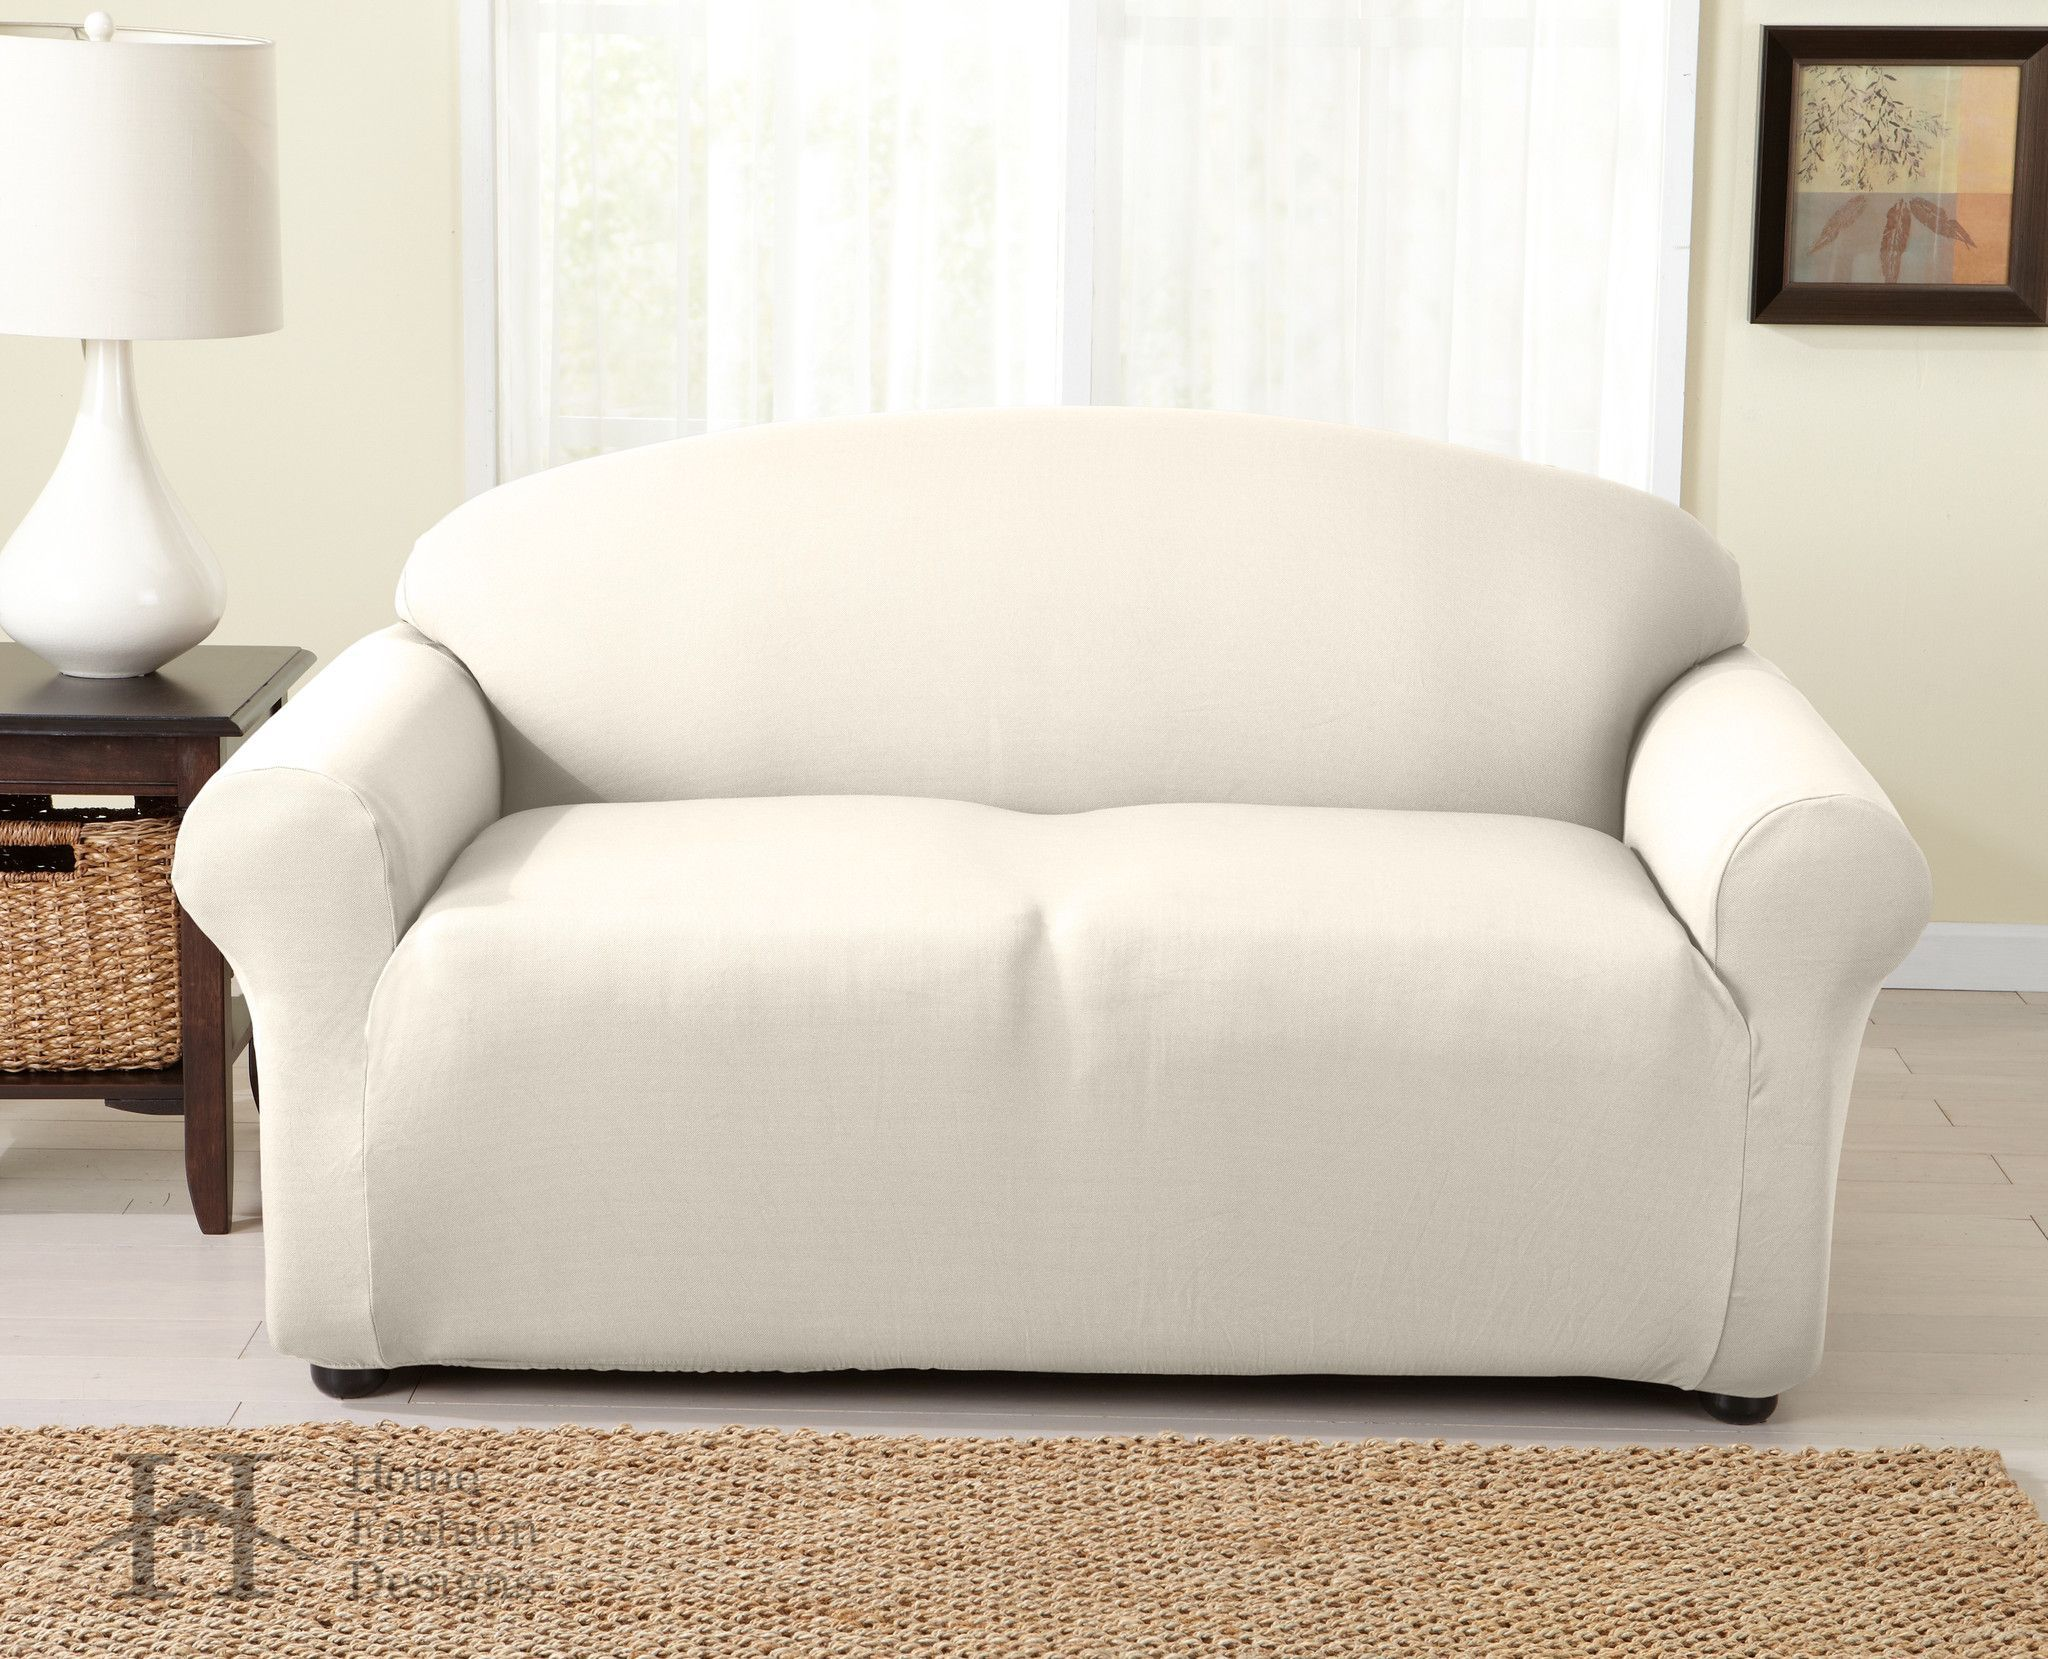 Dawson Collection Twill Strapless Slip Resistant Form Fit Furniture Slipcover